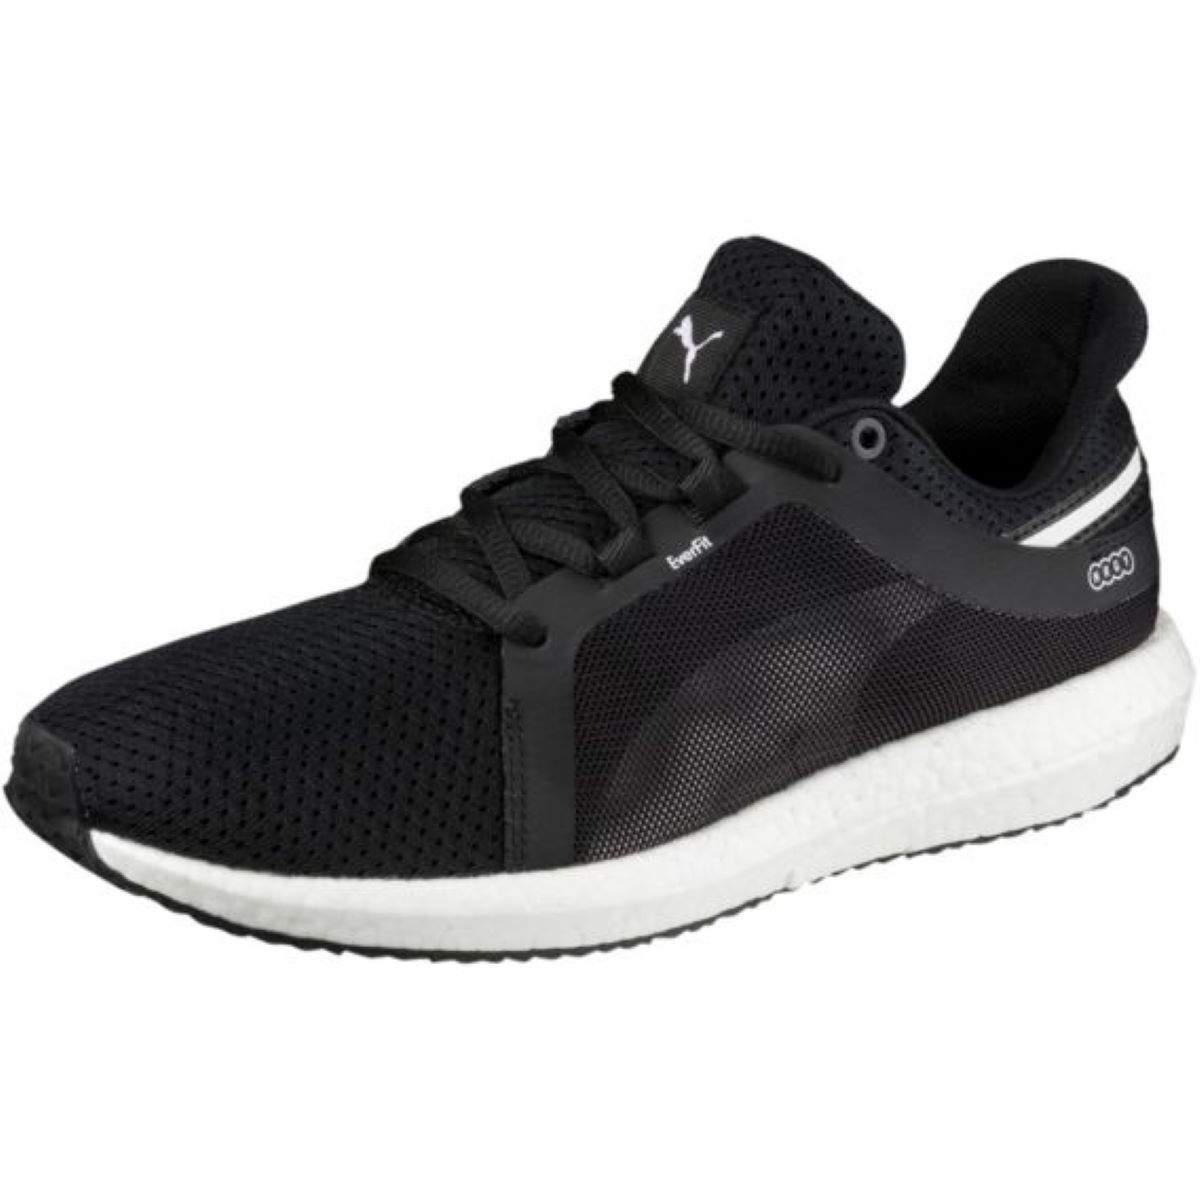 Chaussures Femme Puma Mega NRGY Turbo 2 - UK 4 black-white